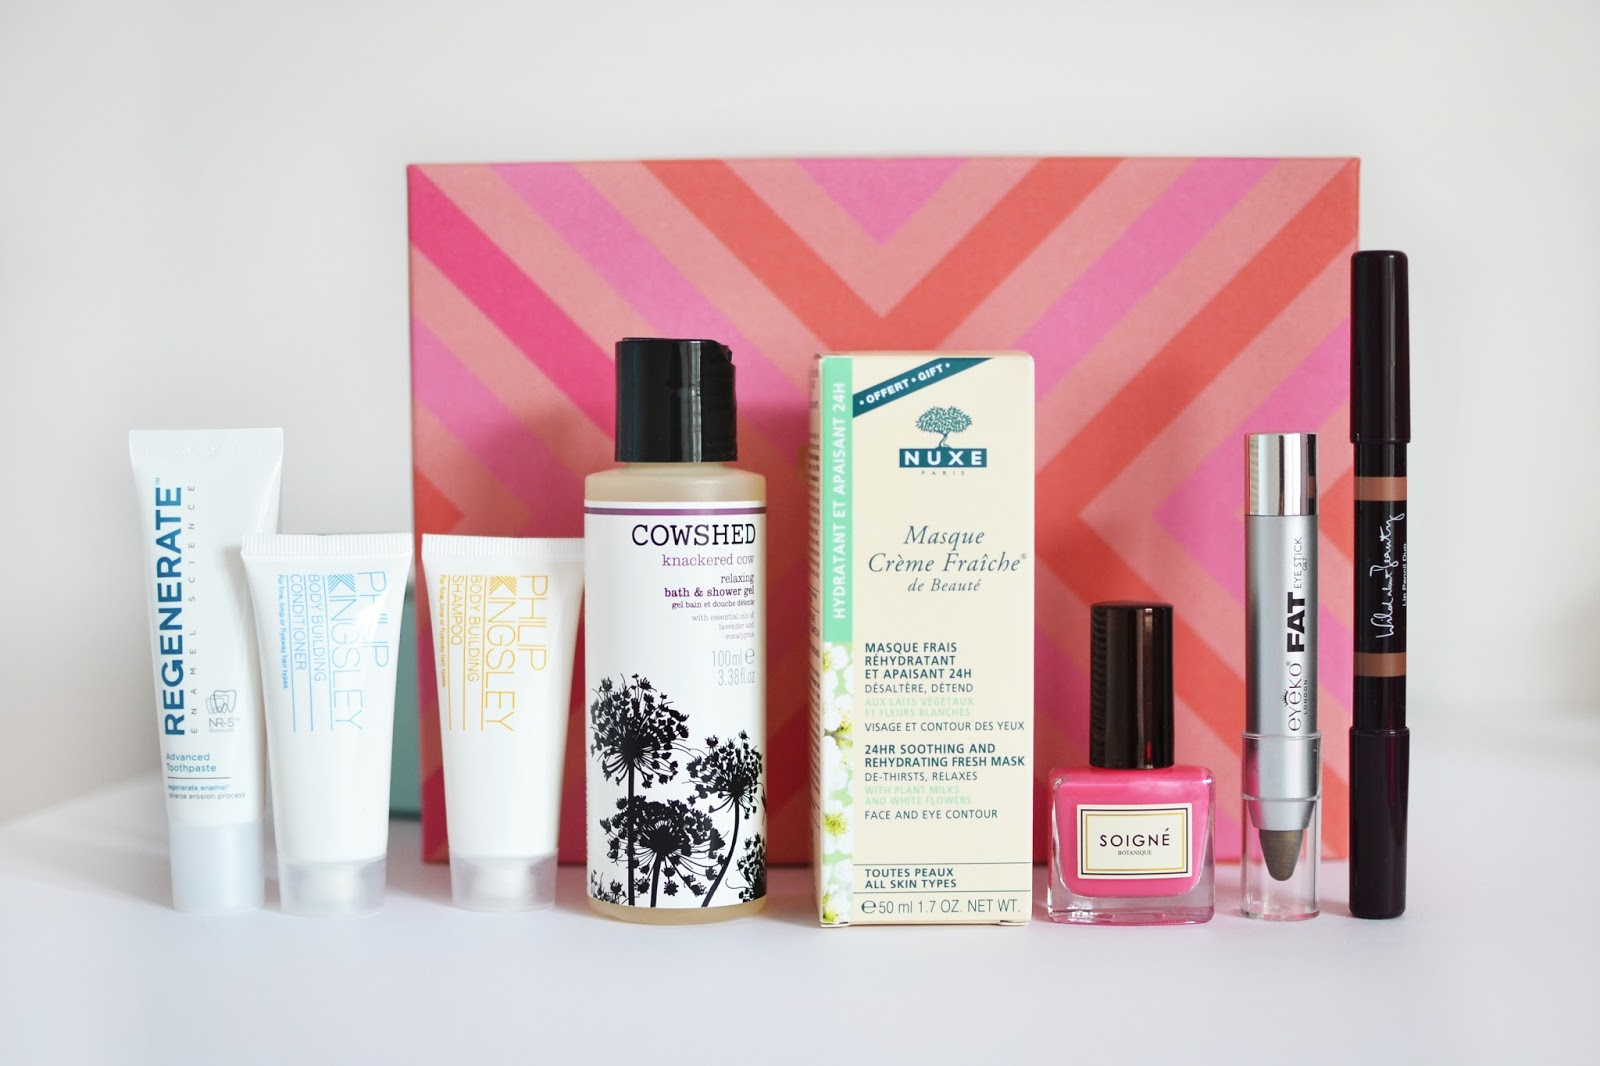 Inside the selfridges birchbox